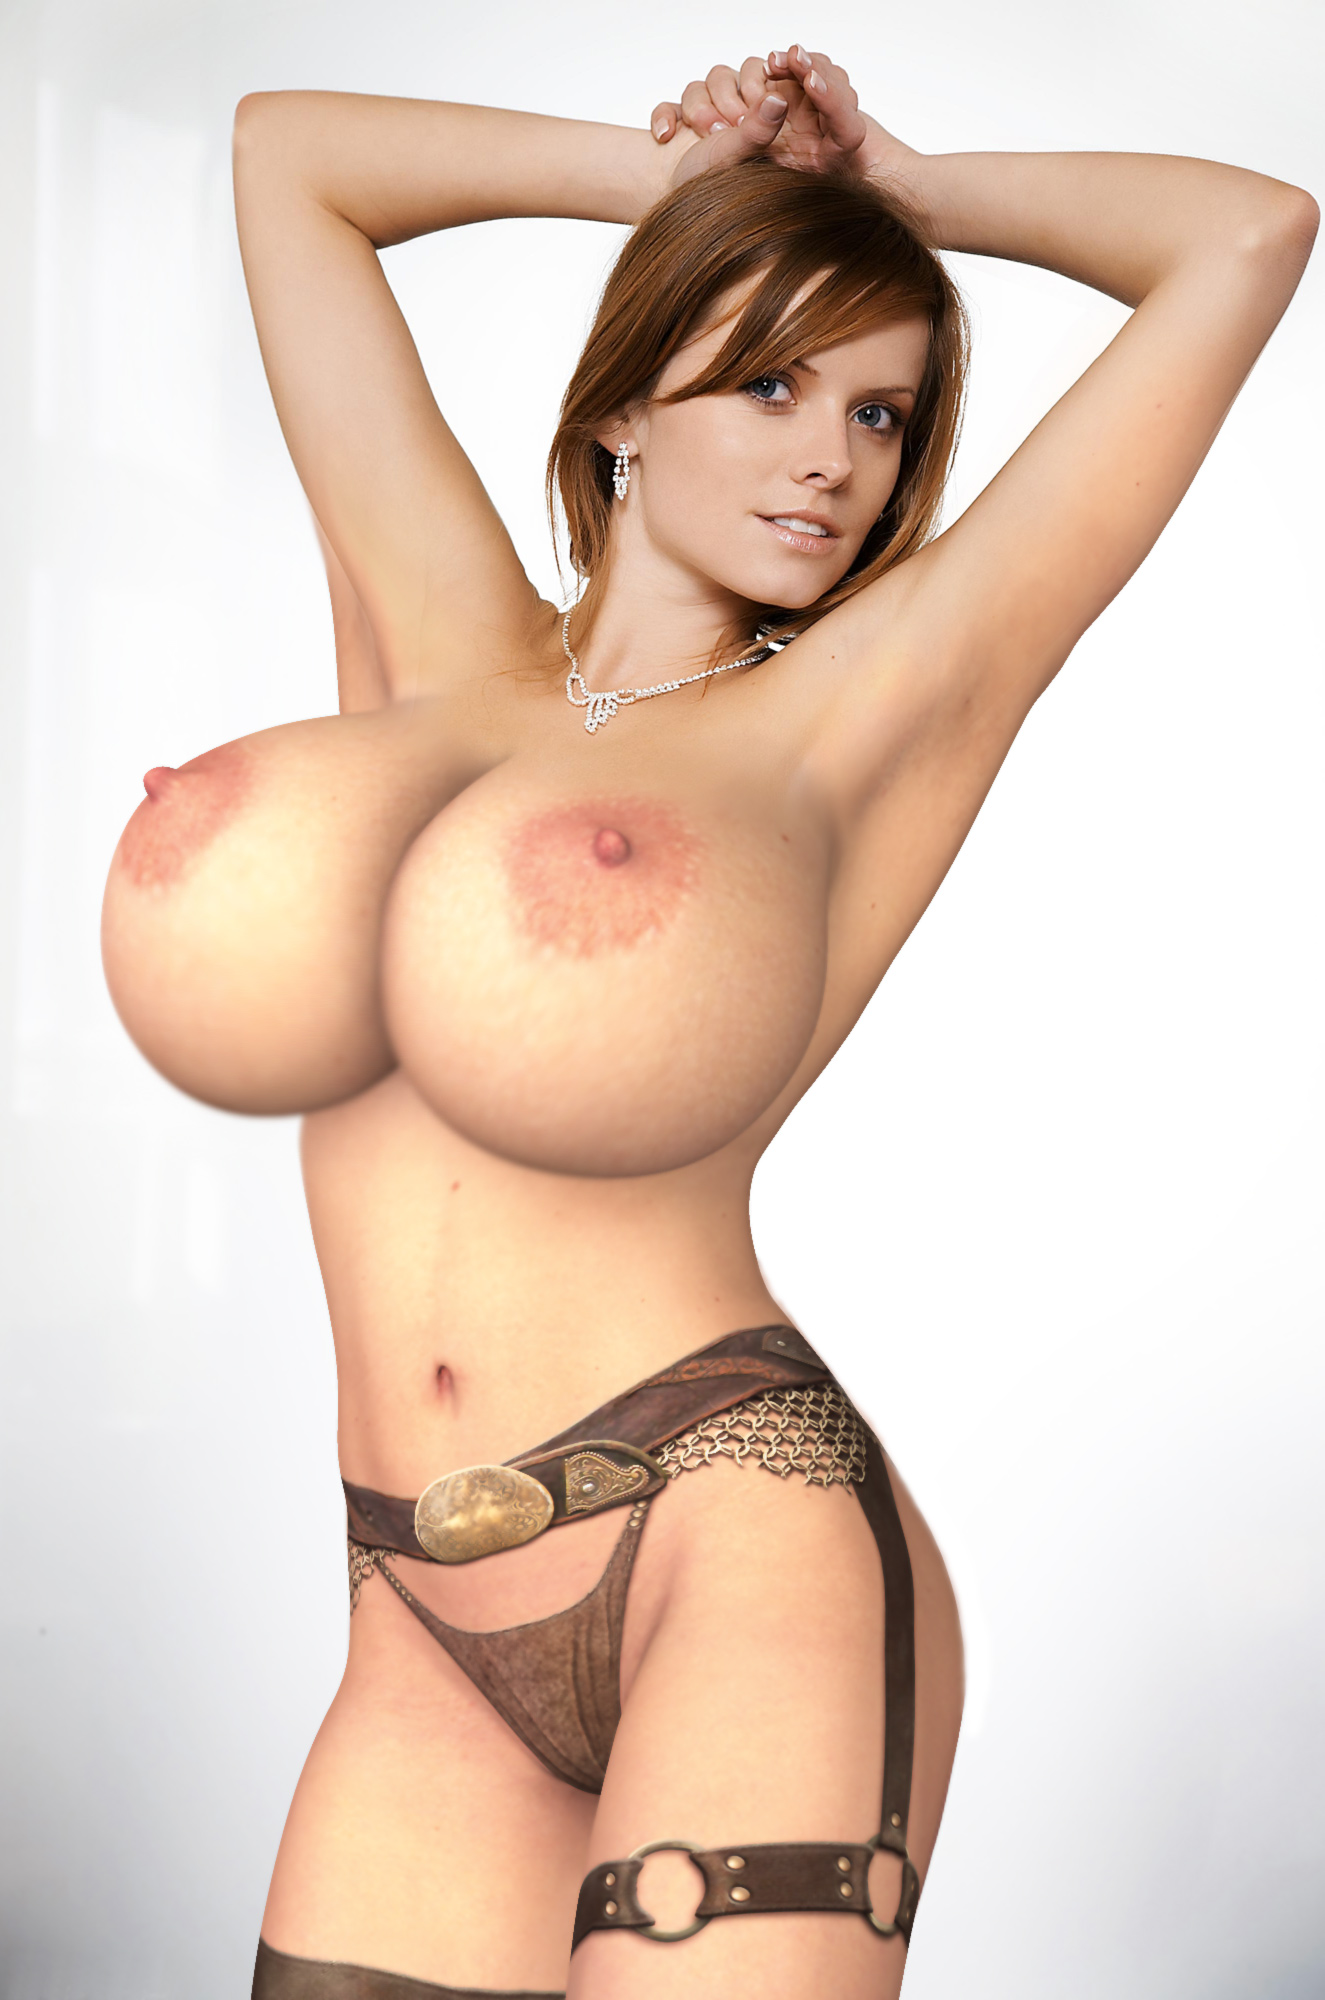 Naked 3d big boobs woman picture naked toons